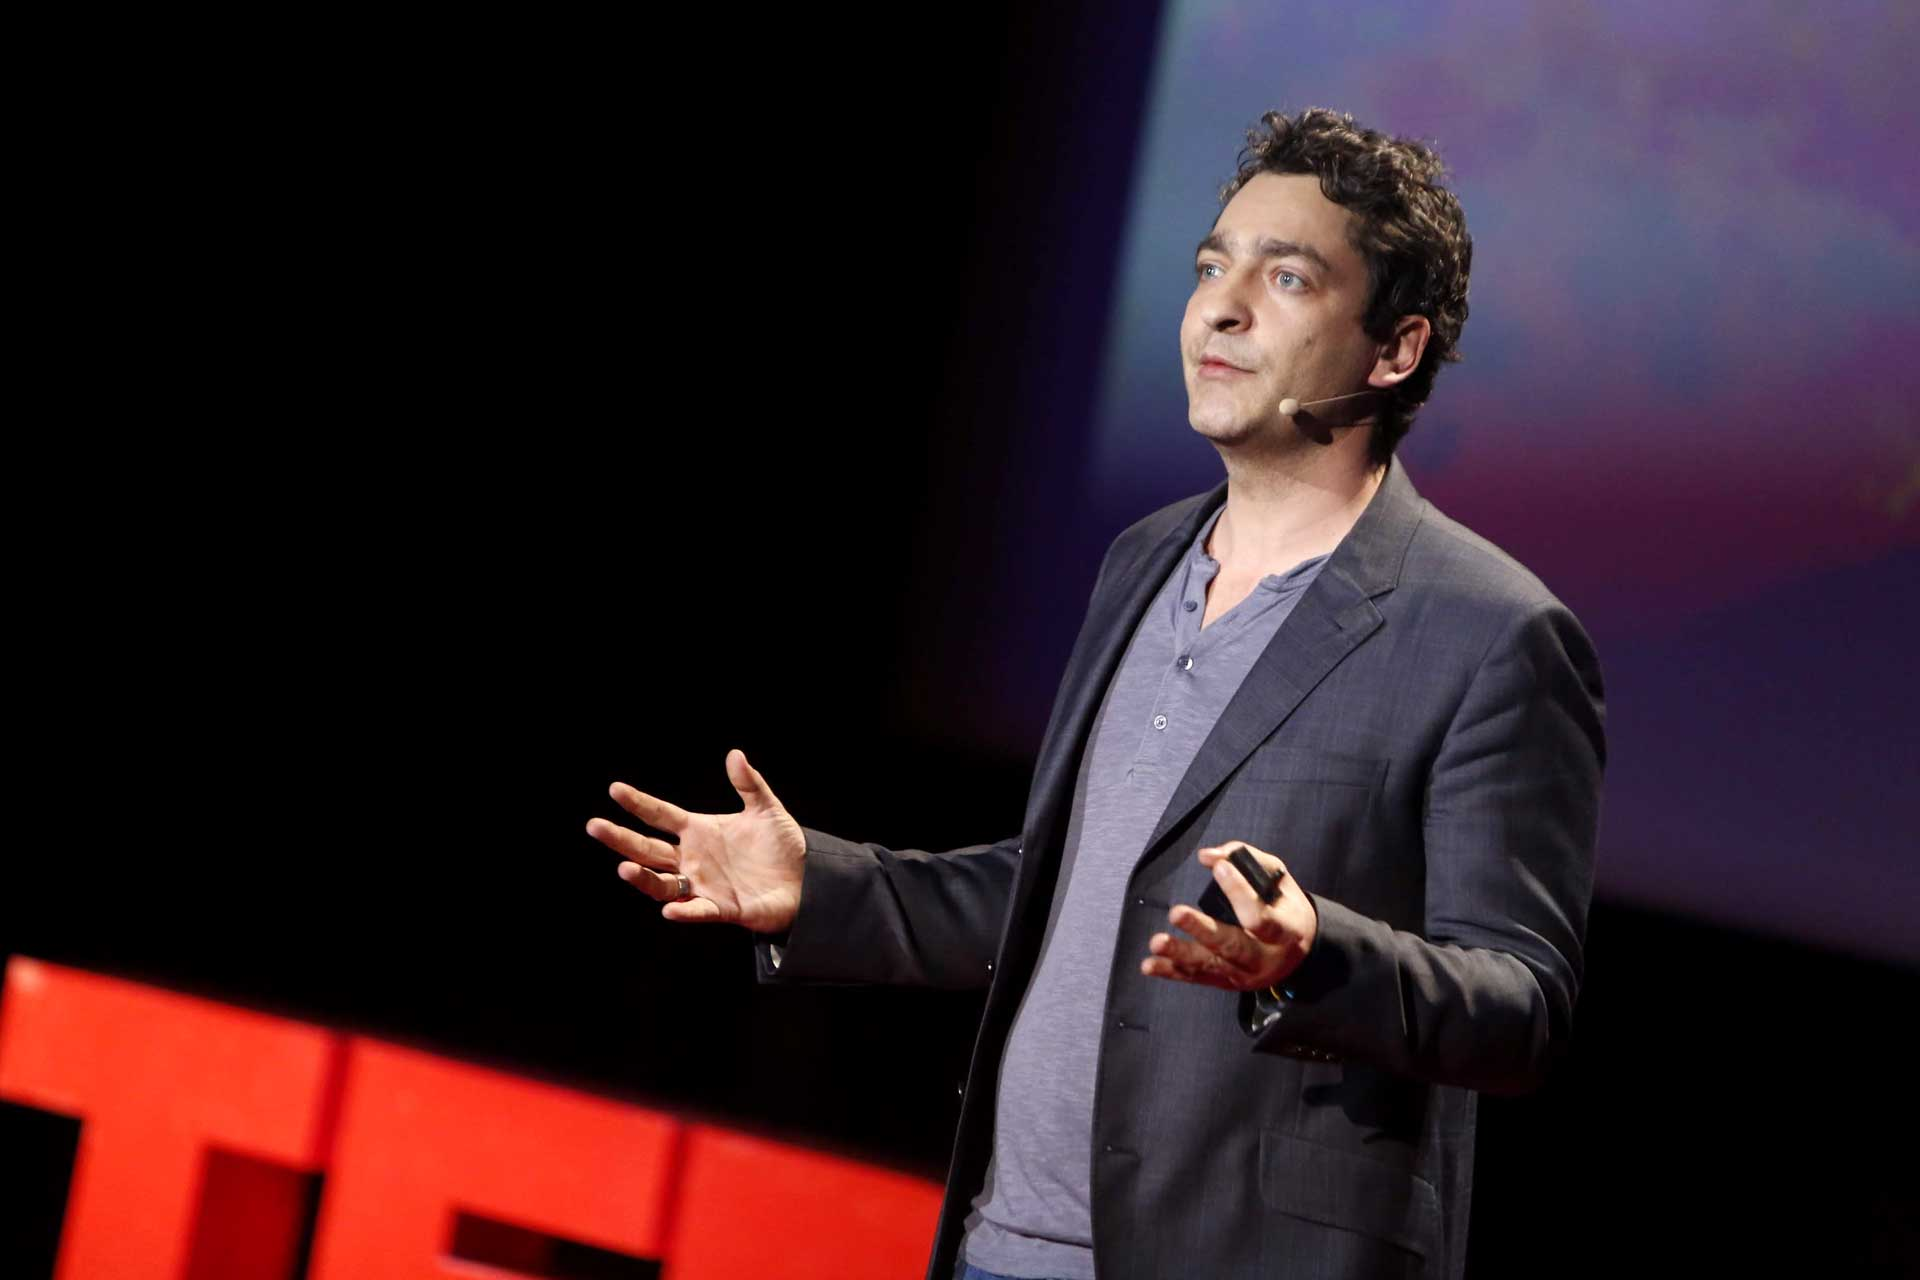 conference-TEDxParis-2013-18.jpg